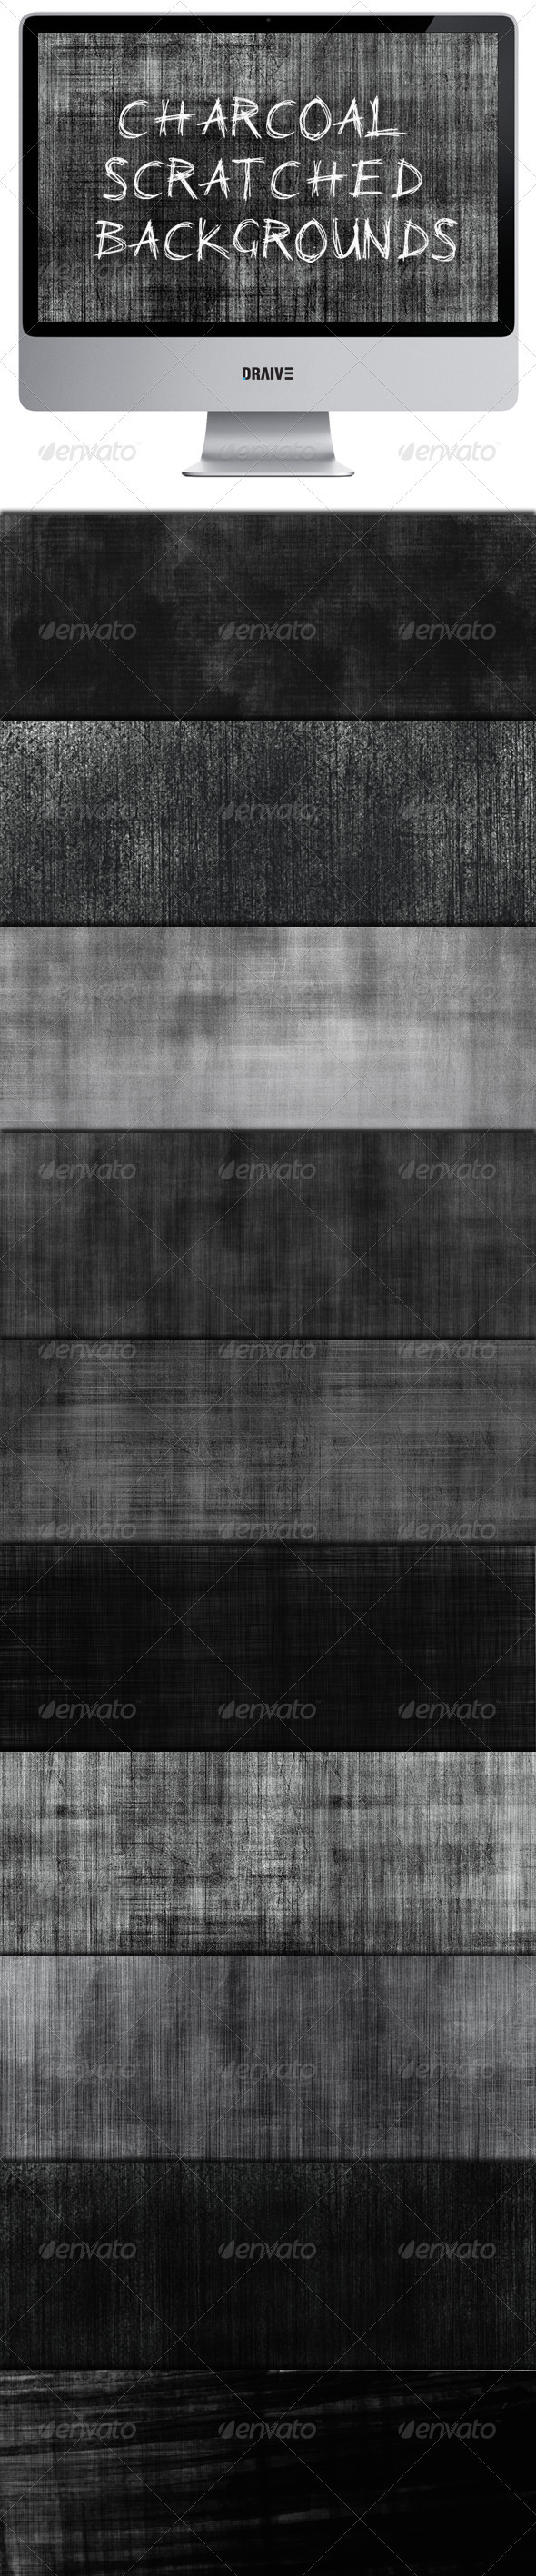 GraphicRiver Charcoal Scratched Backgrounds 3339284